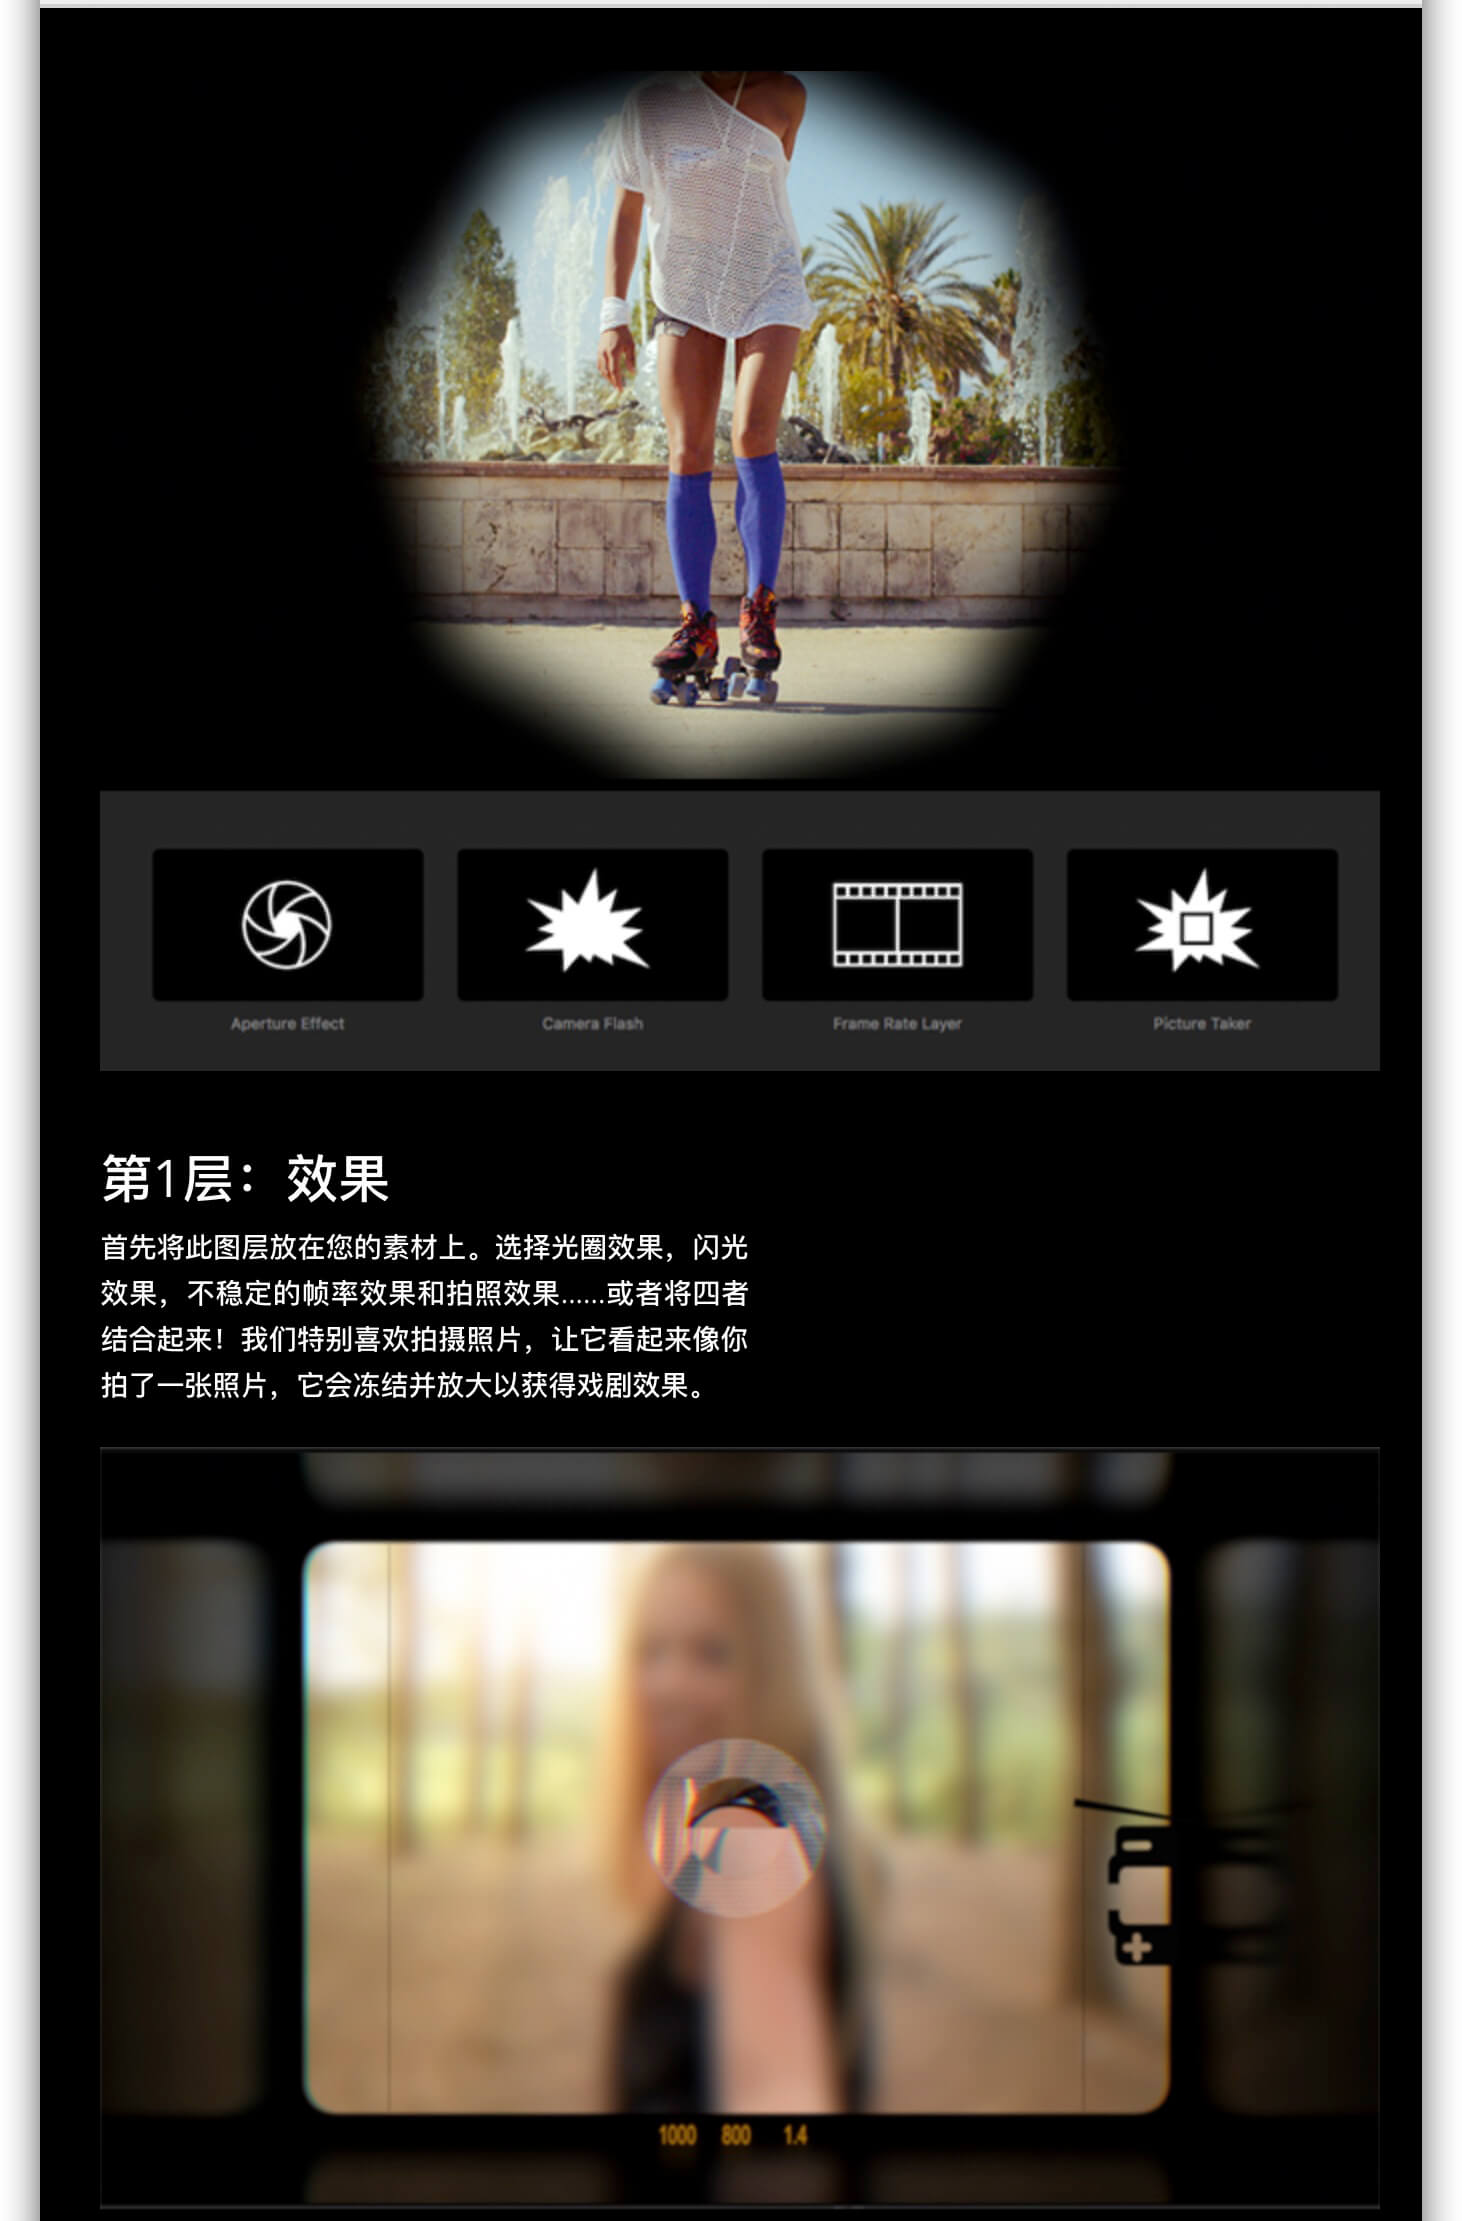 Fcpx插件 50个模拟相机取景器效果动画模板 CineFlare Viewfinder